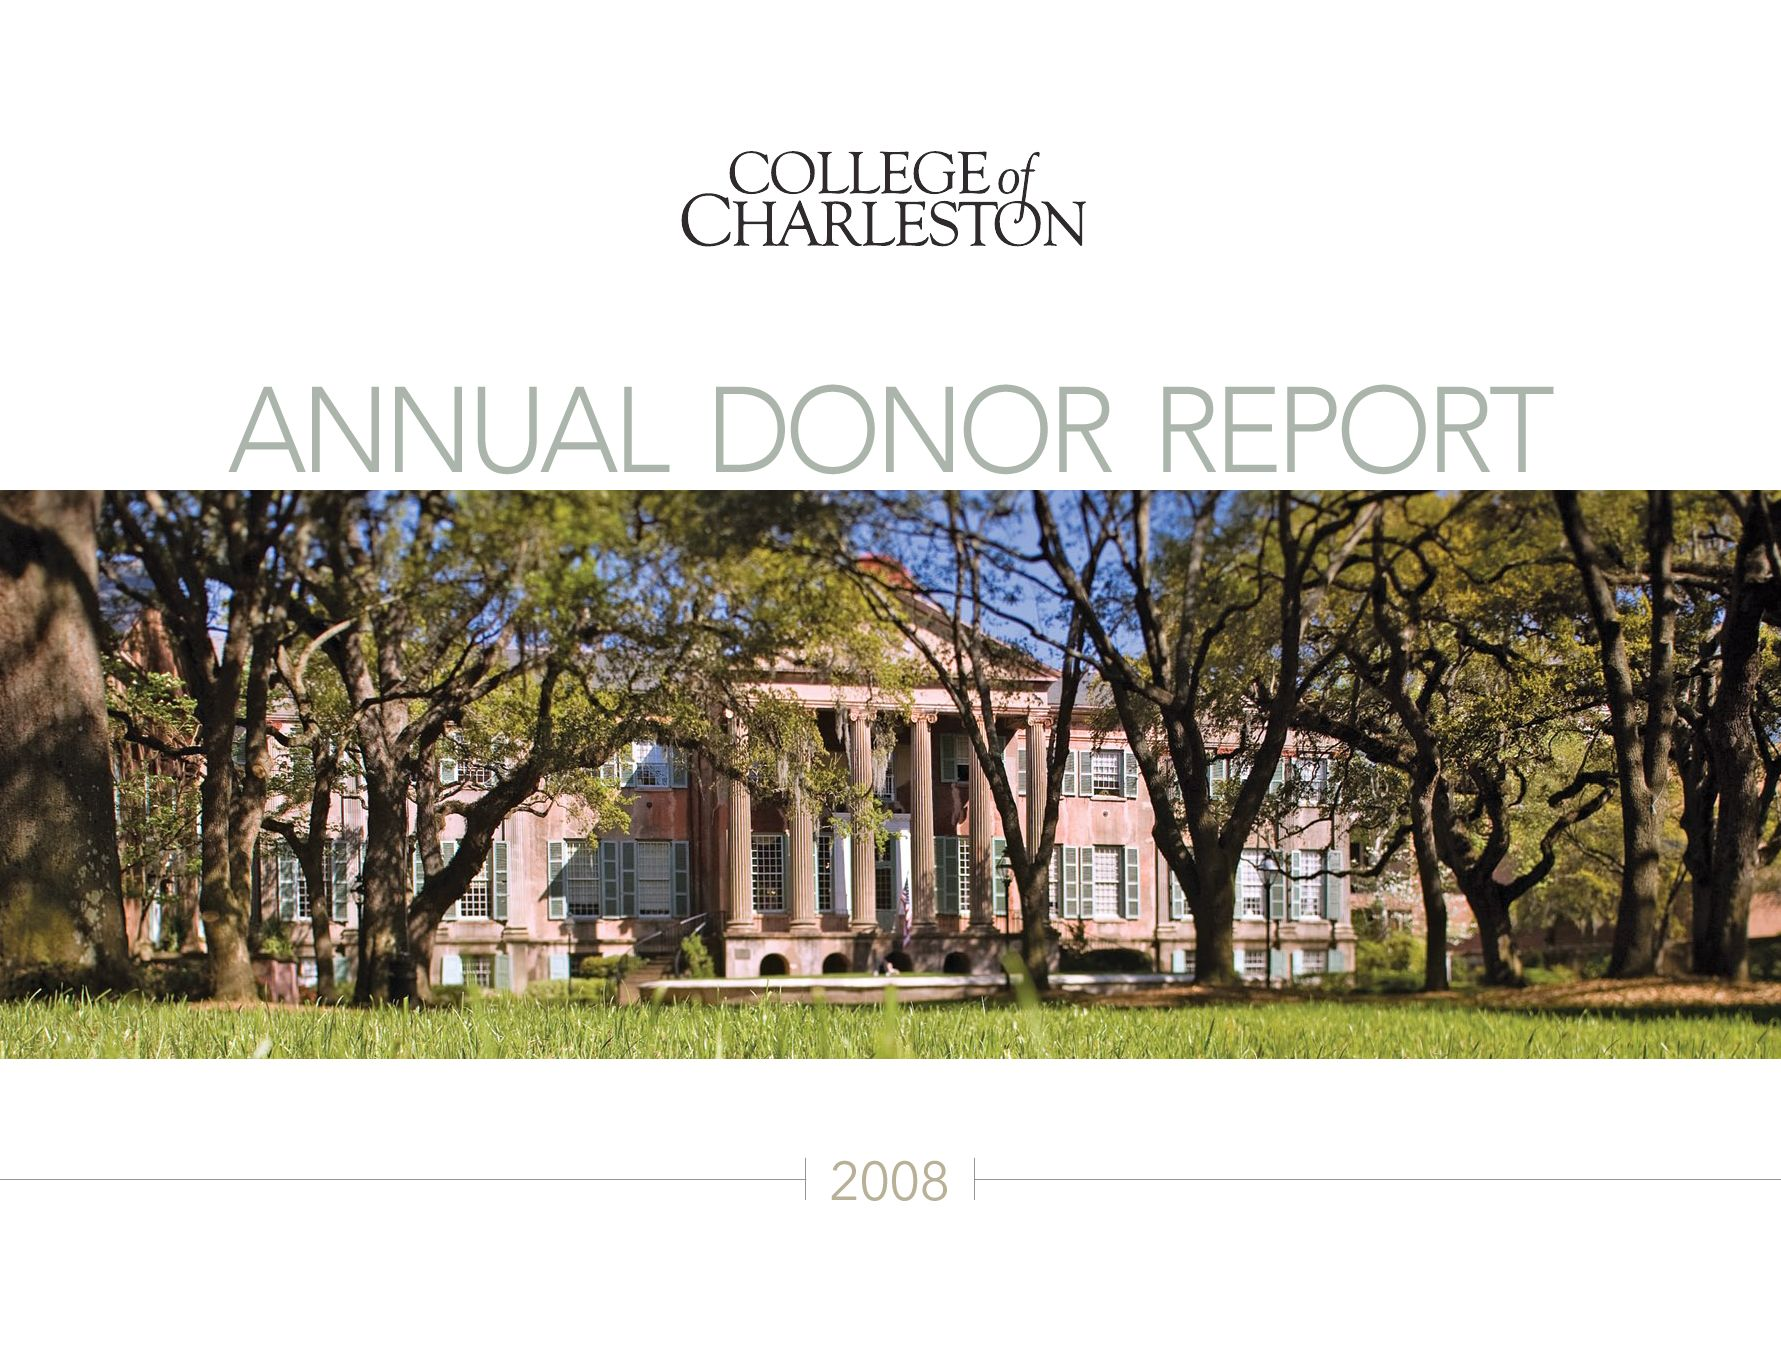 College of Charleston Annual Donor Report (2008) by College of ...